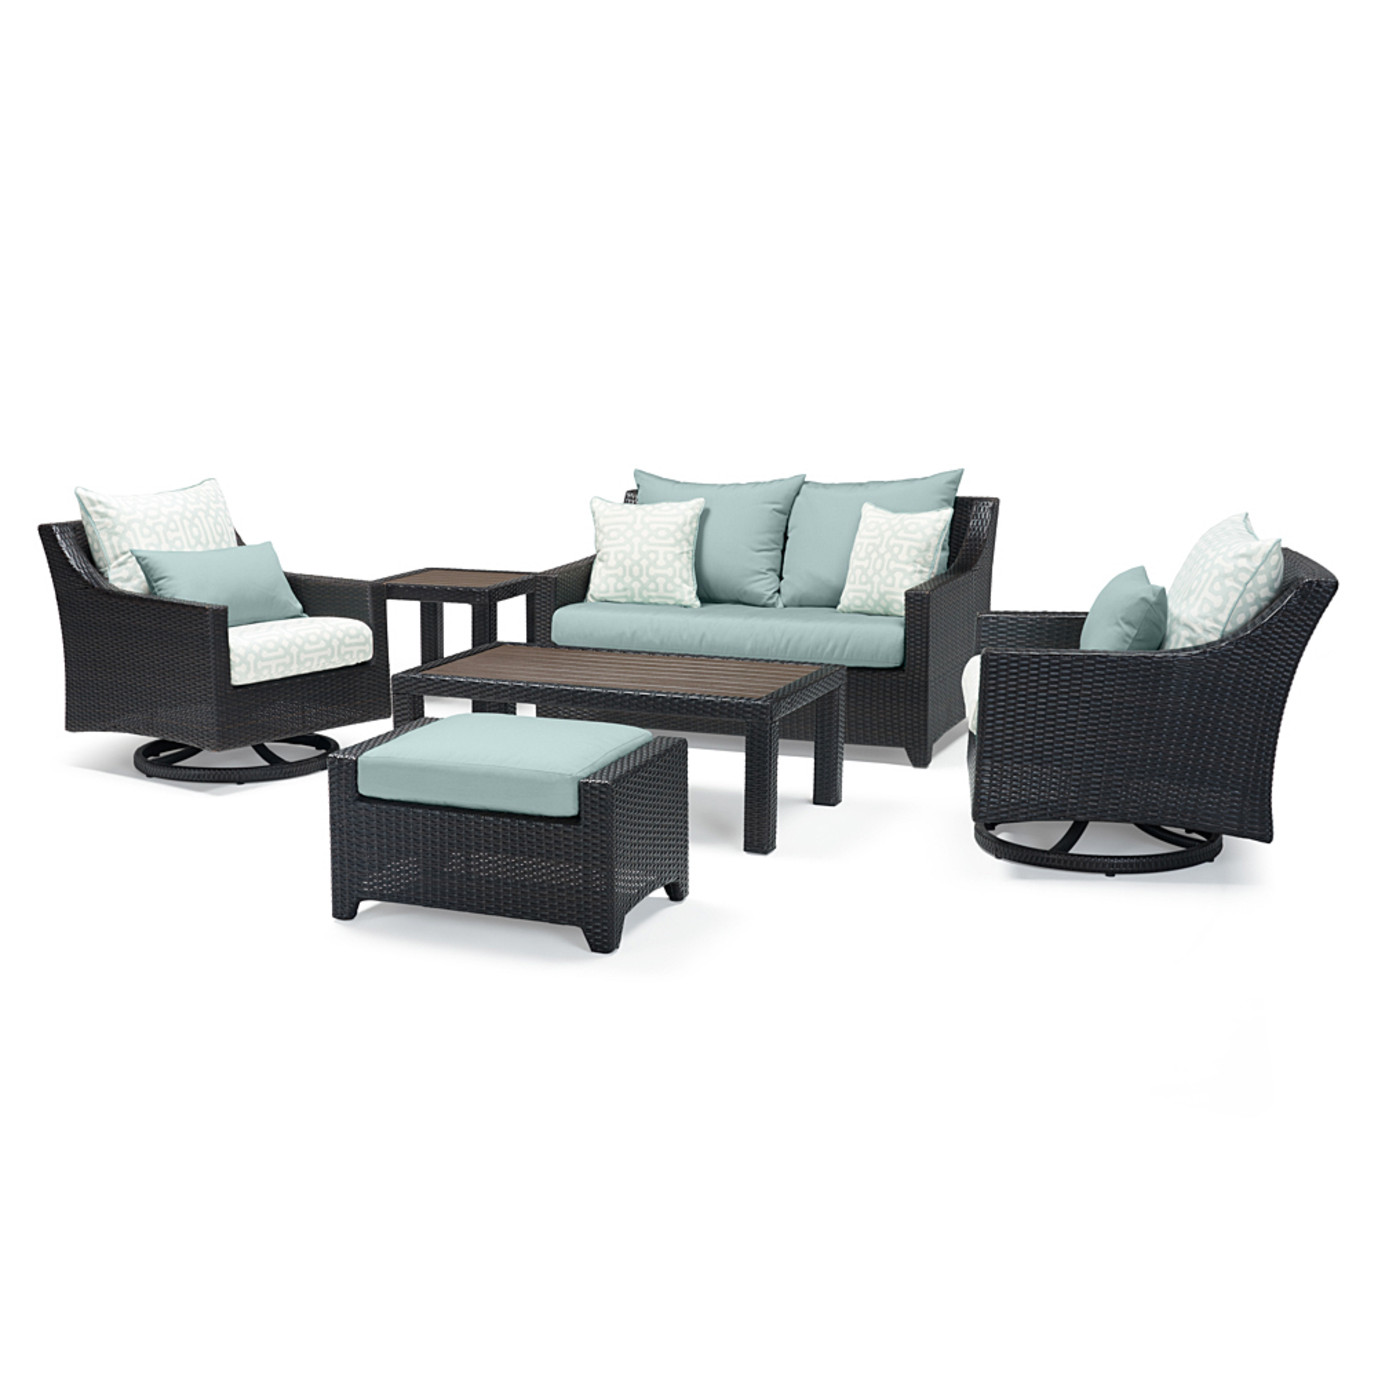 Deco™ Deluxe 6pc Love & Motion Club Seating Set - Spa Blue